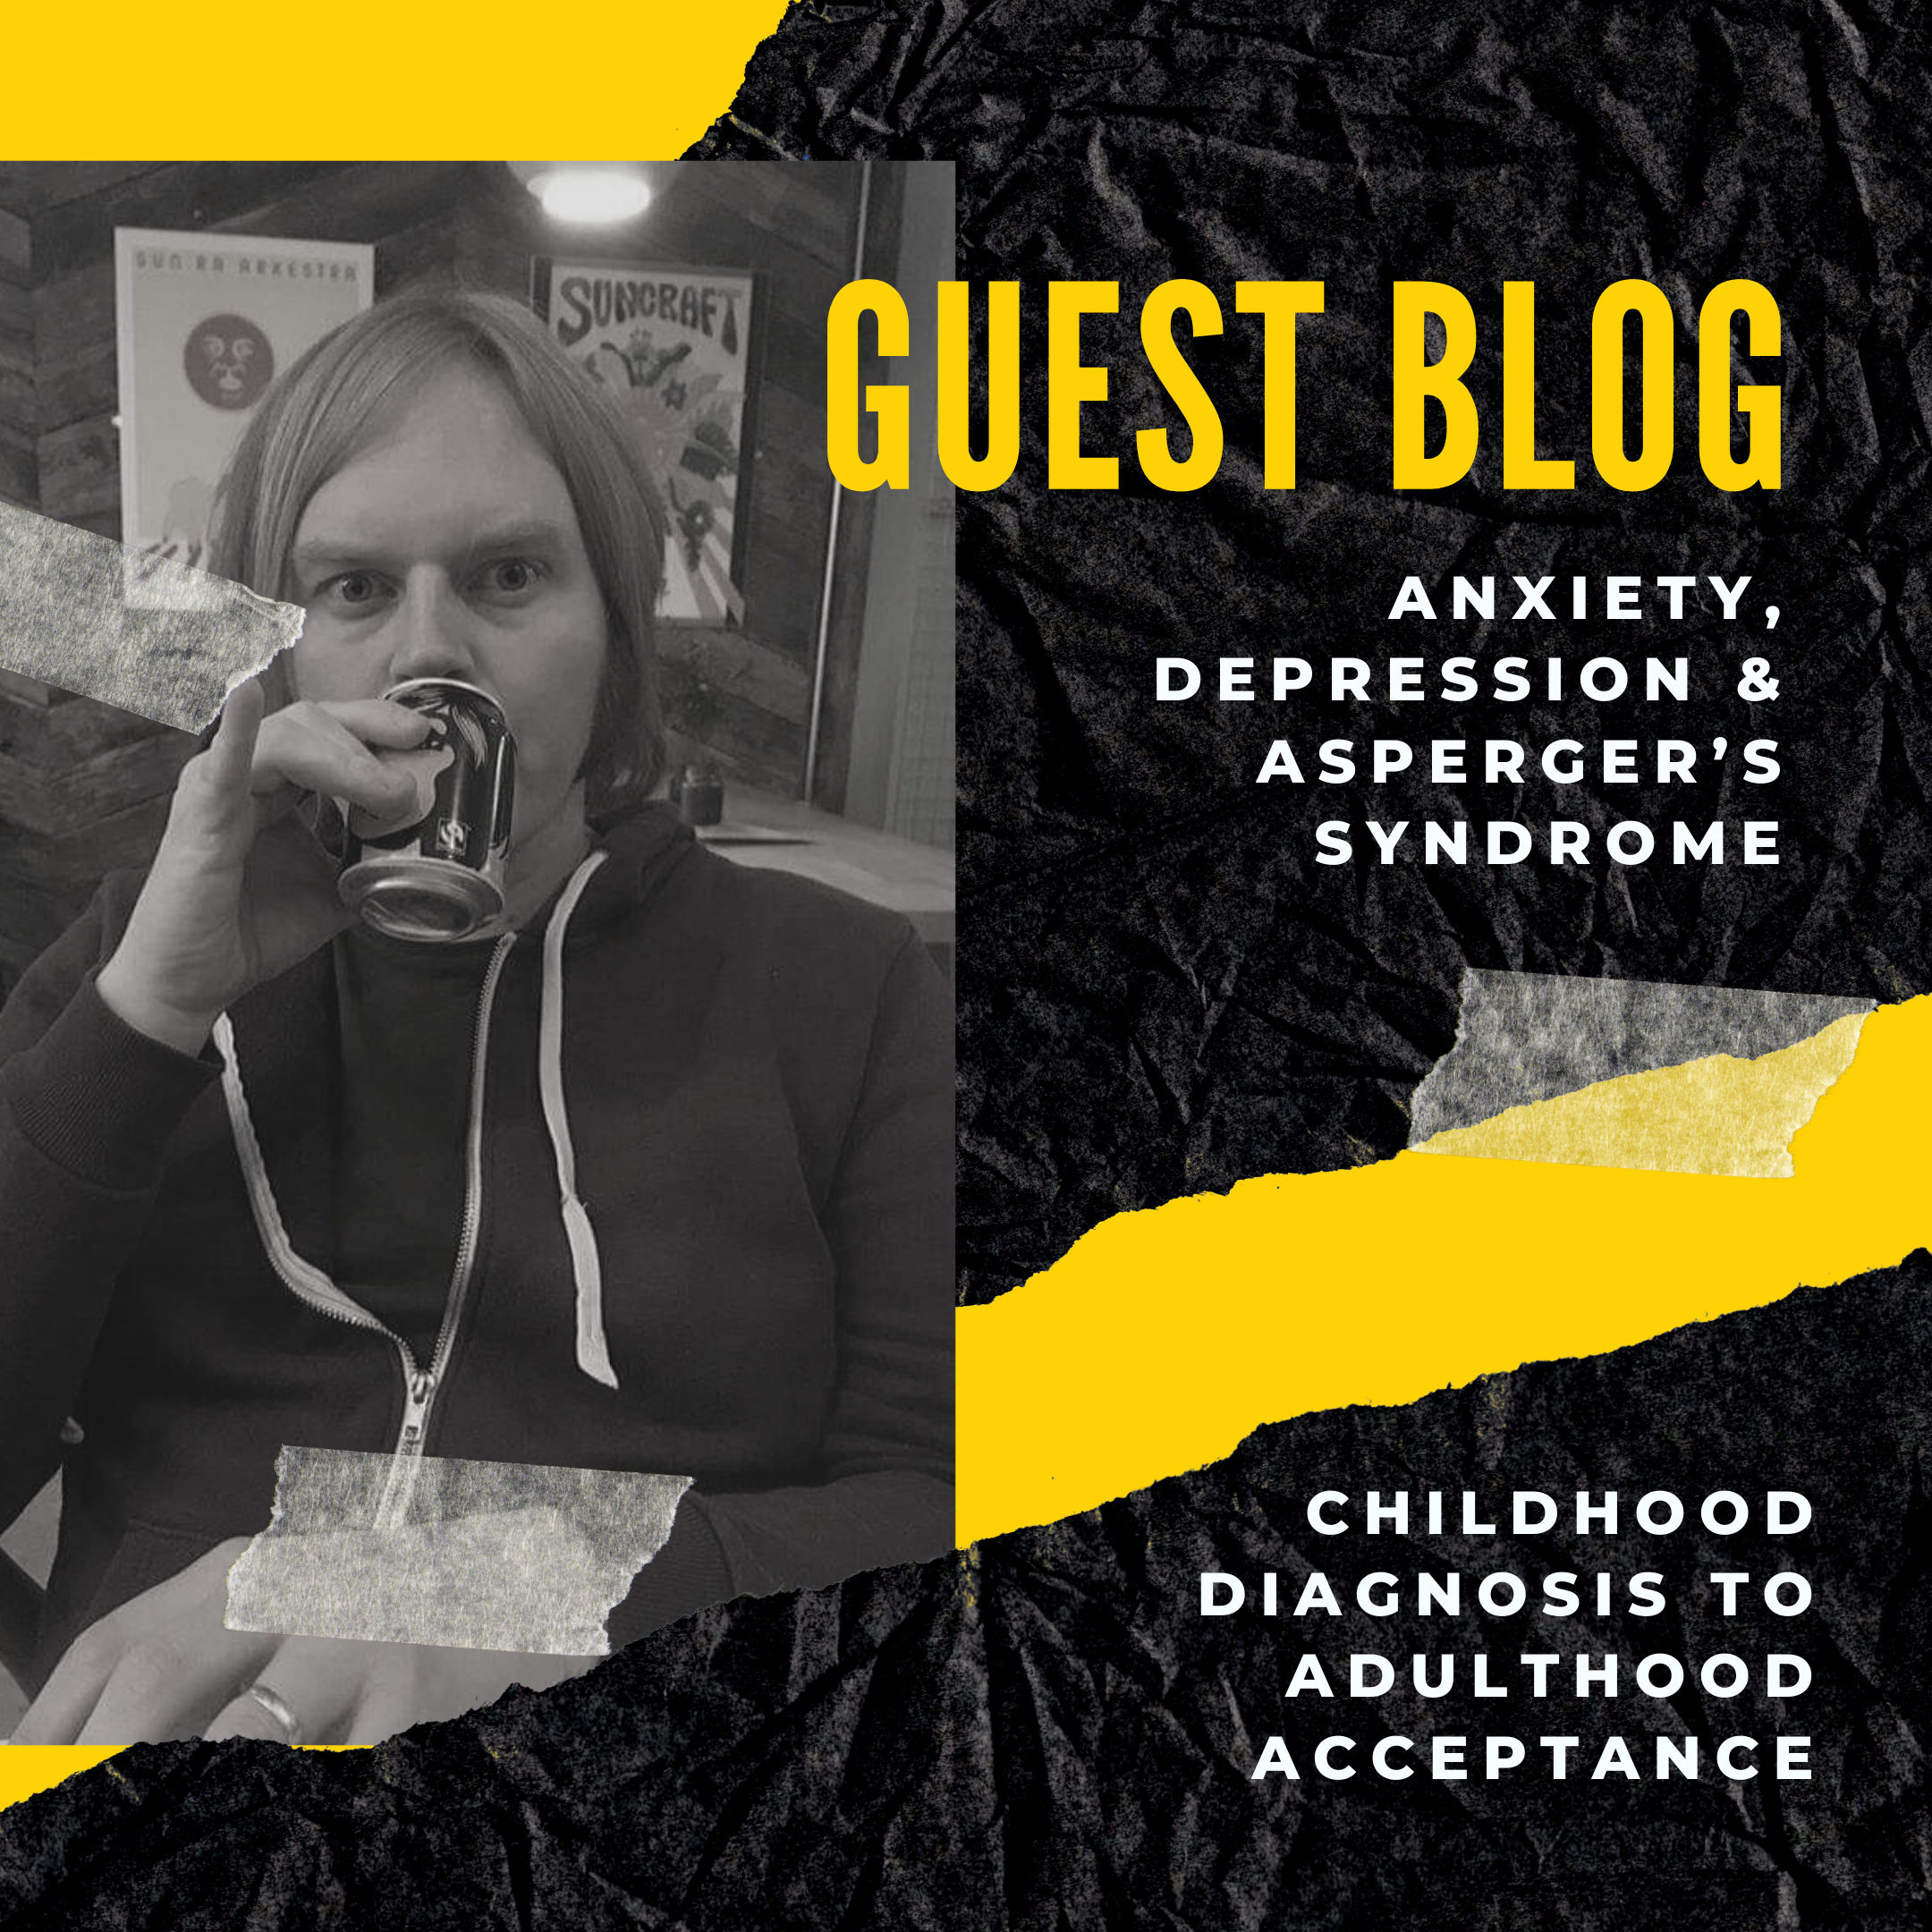 Image of Barry, the guest blogger who talks talks about his axiety, depression and Asperger's diagnosis